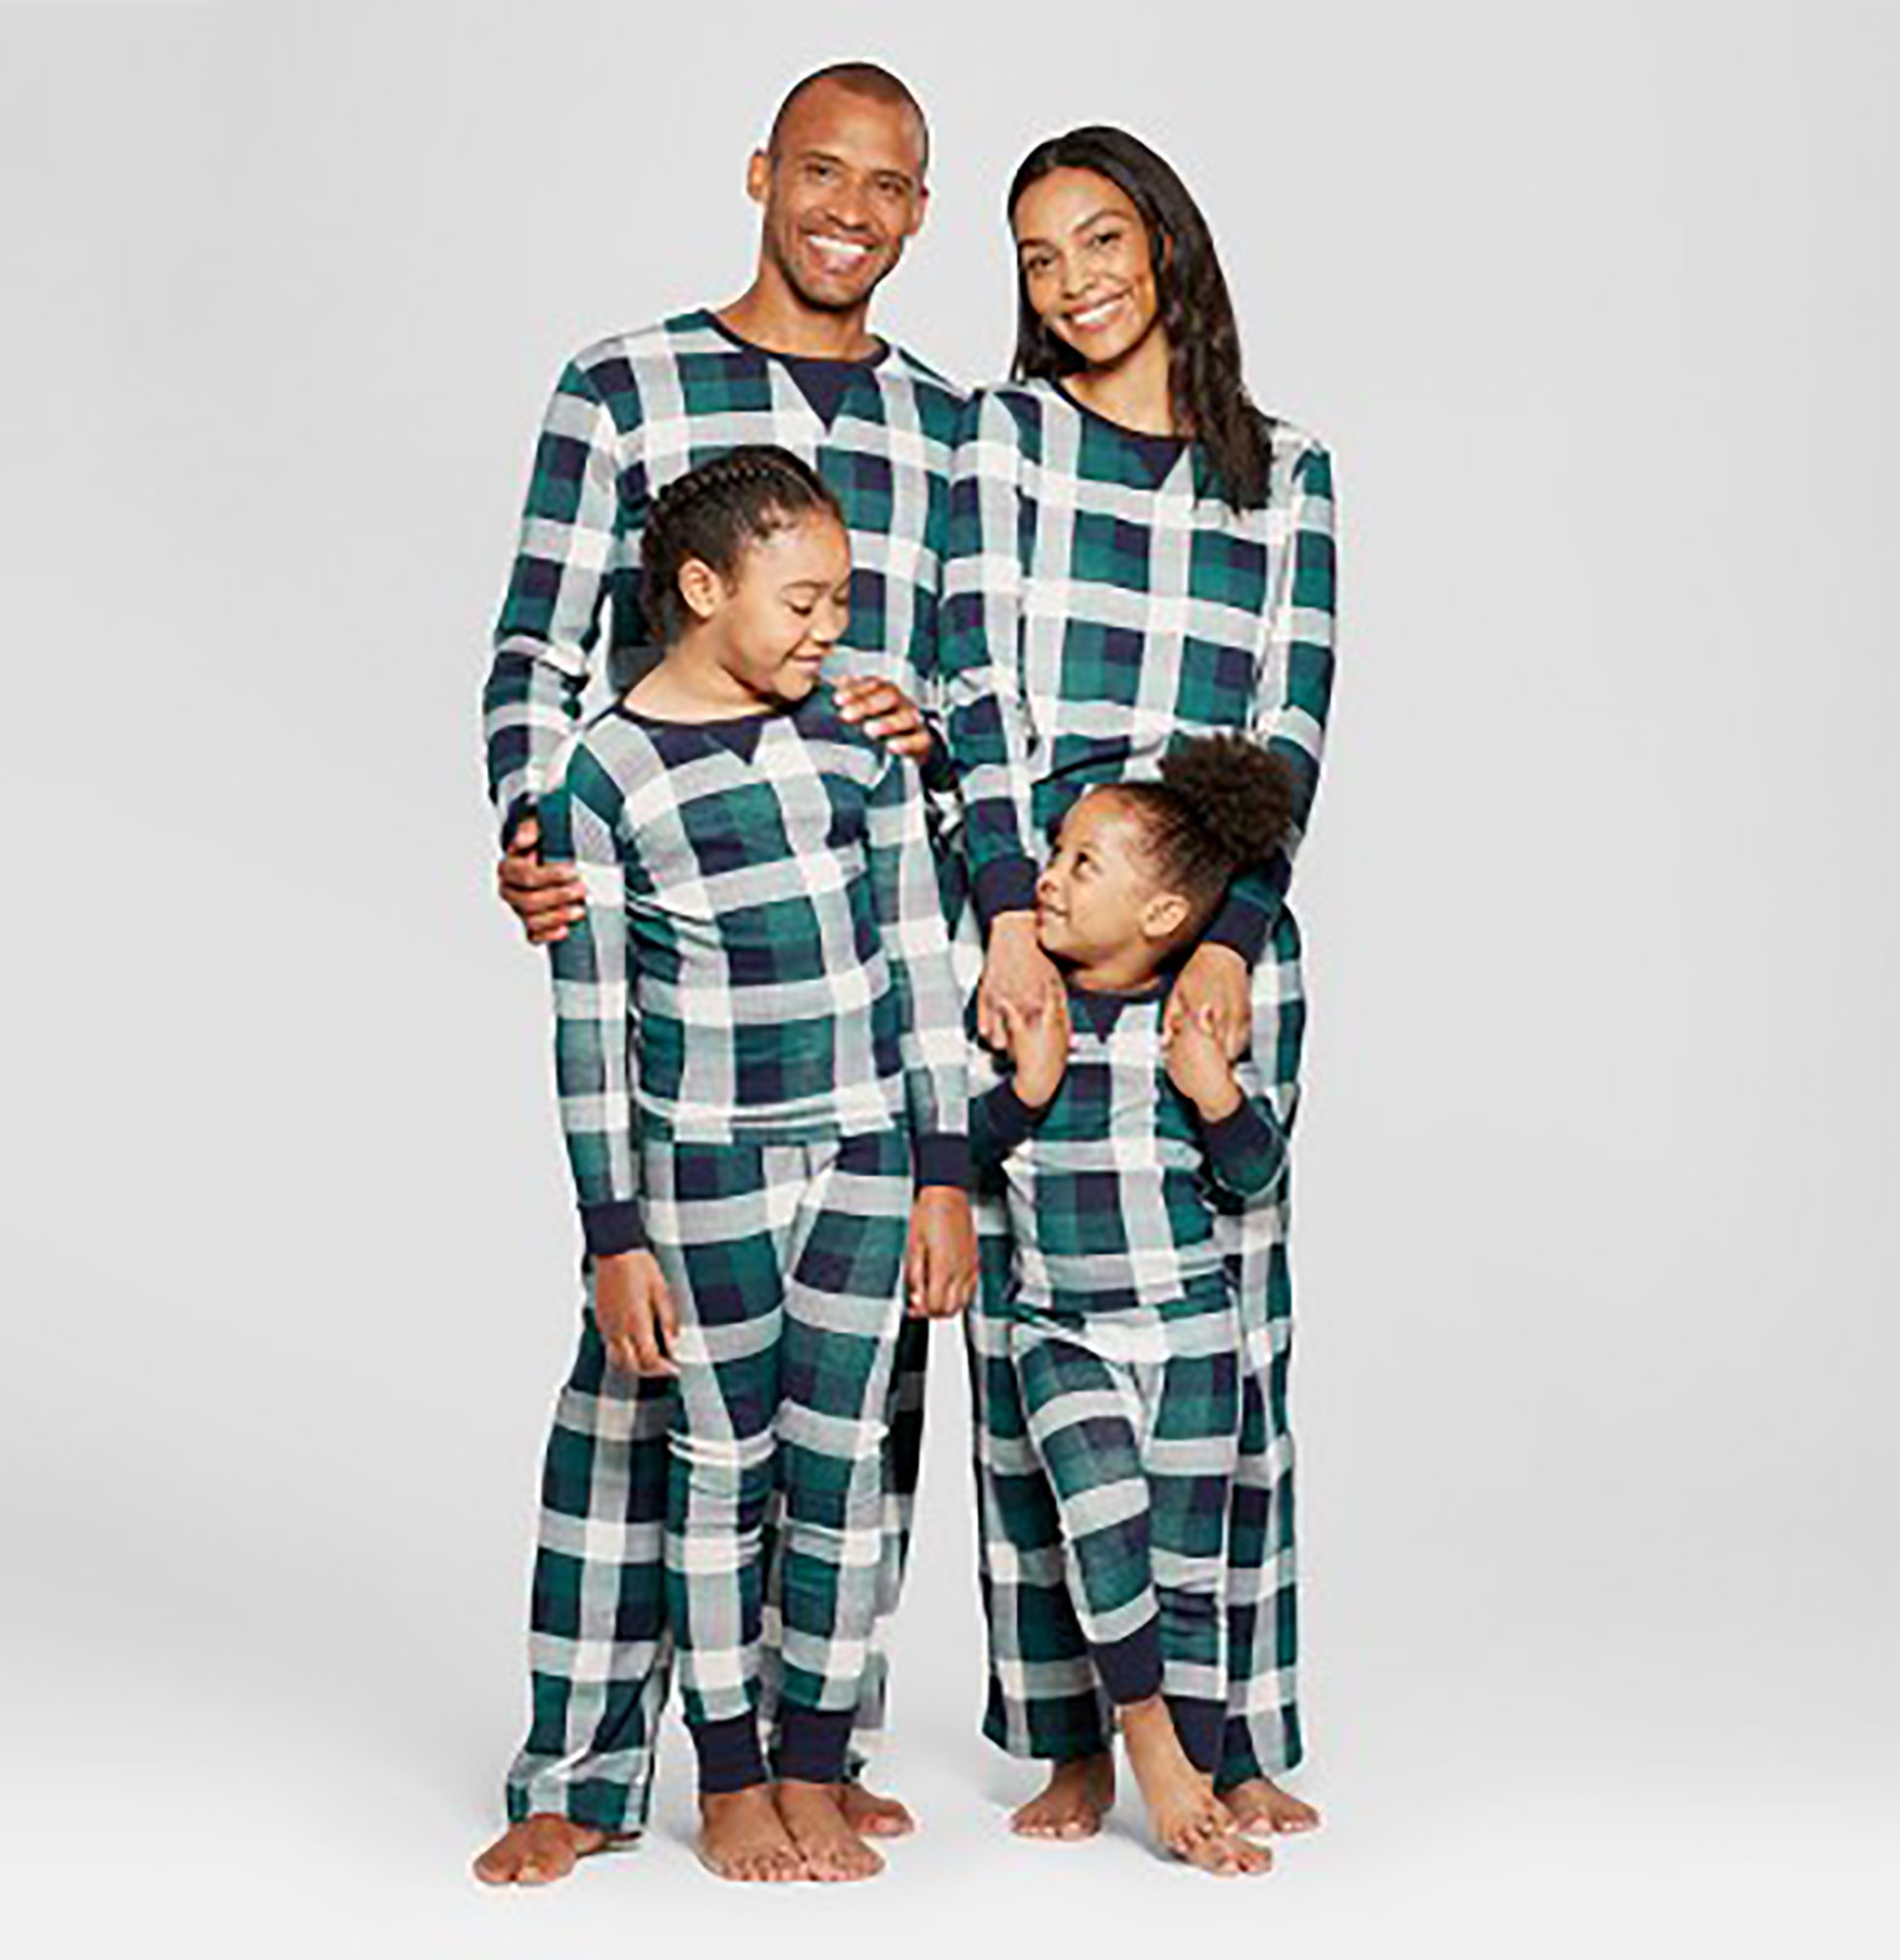 b7cdf3159c22 This year Target has a huge selection of adorable matching family pajamas  for the holidays.